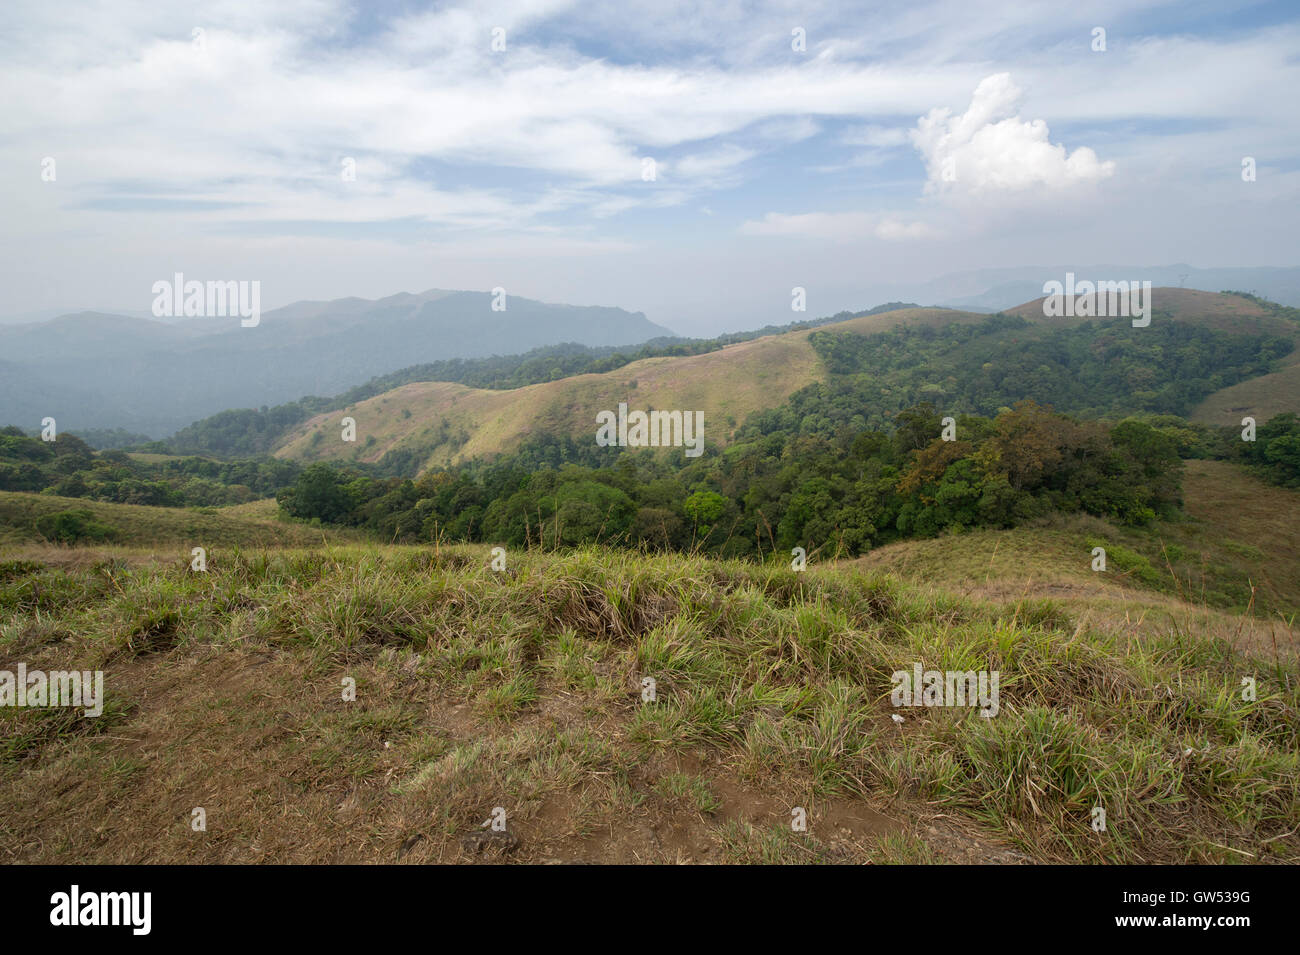 Looking over the mountains and jungle of the Periyar Tiger Reserve in the foothills of the Western Ghats near Thekkady - Stock Image